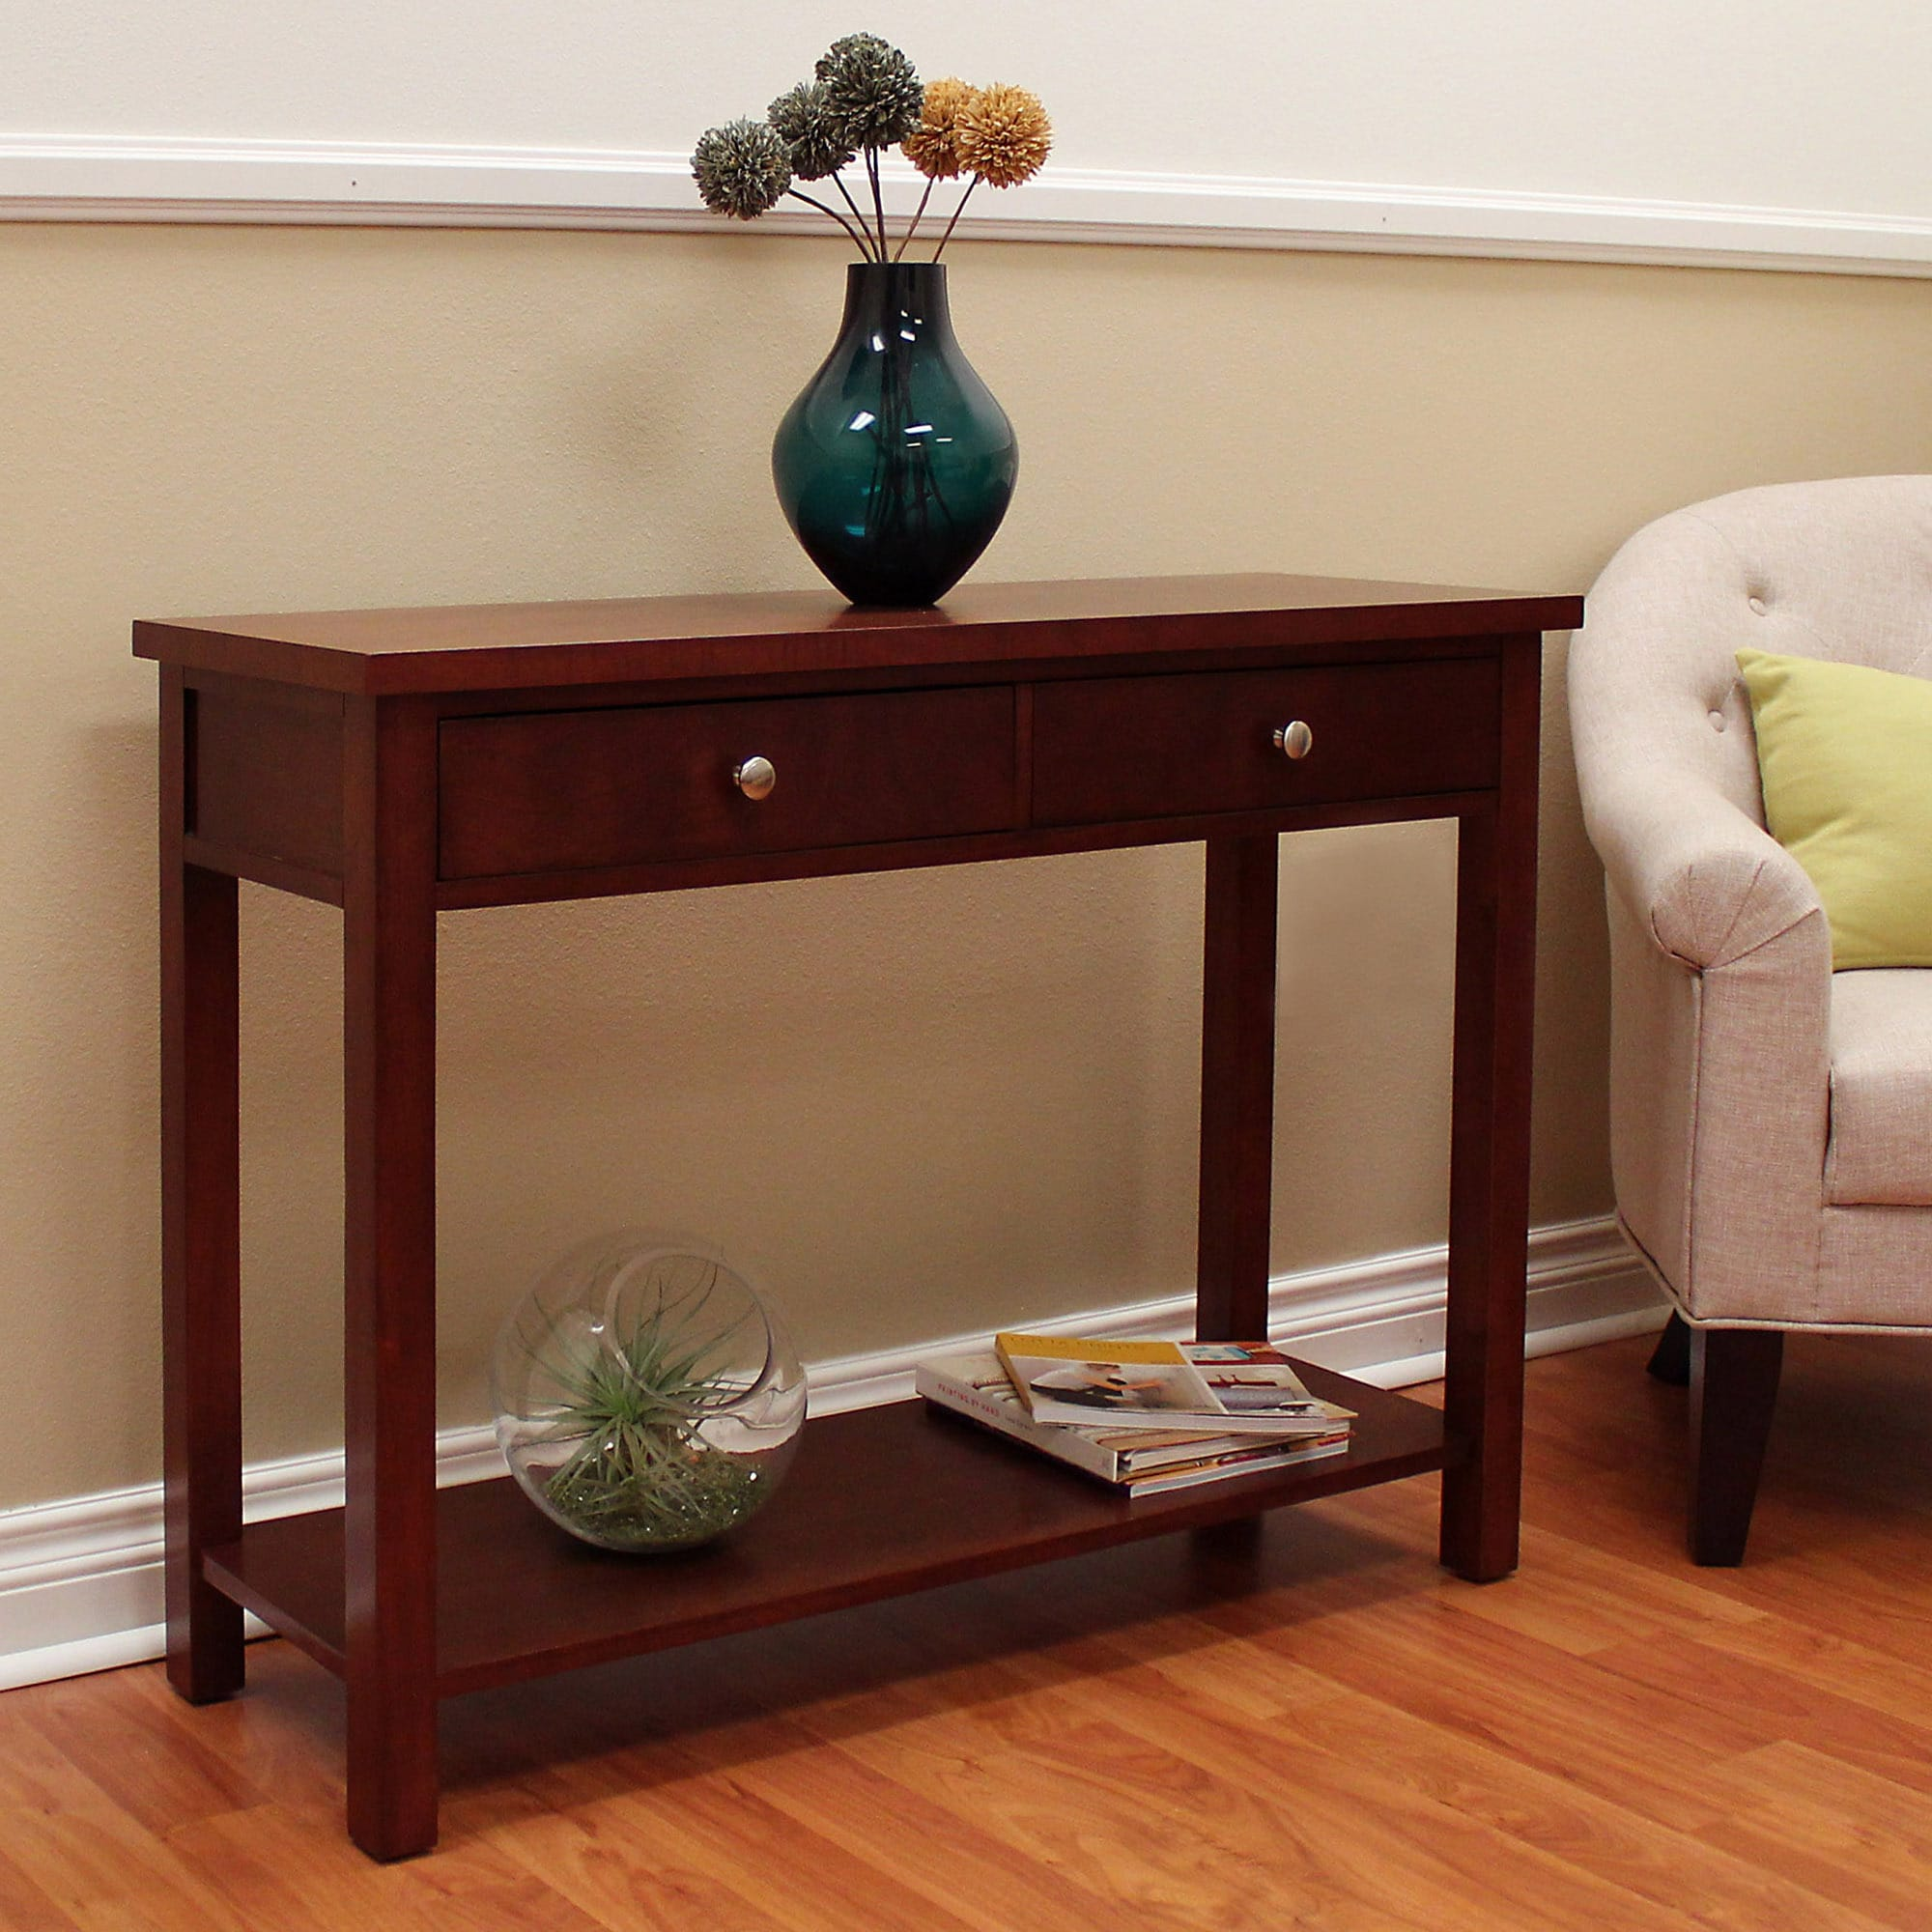 cherry sofa table. Oakdale Cherry Console Table - Free Shipping Today Overstock 18410808 Sofa A